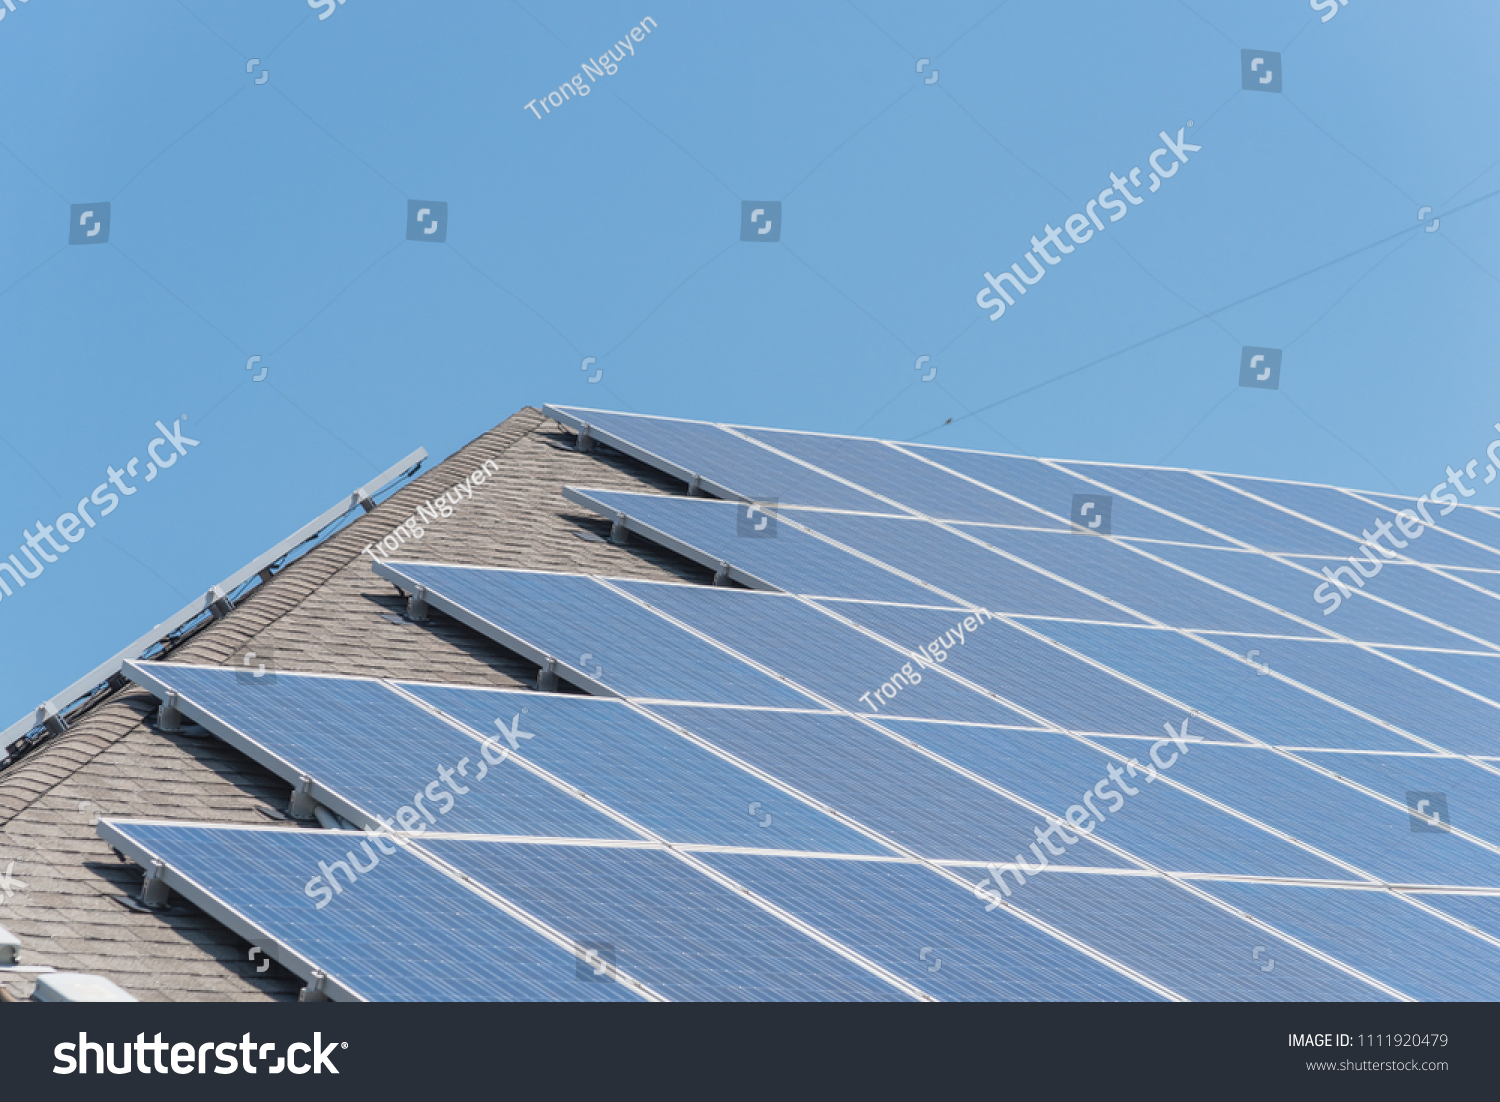 Renewable Clean Vs Traditional Energy Closeup Stock Photo Edit Now Marine Solar Panel Wiring Close Up System On Asphalt Shingles